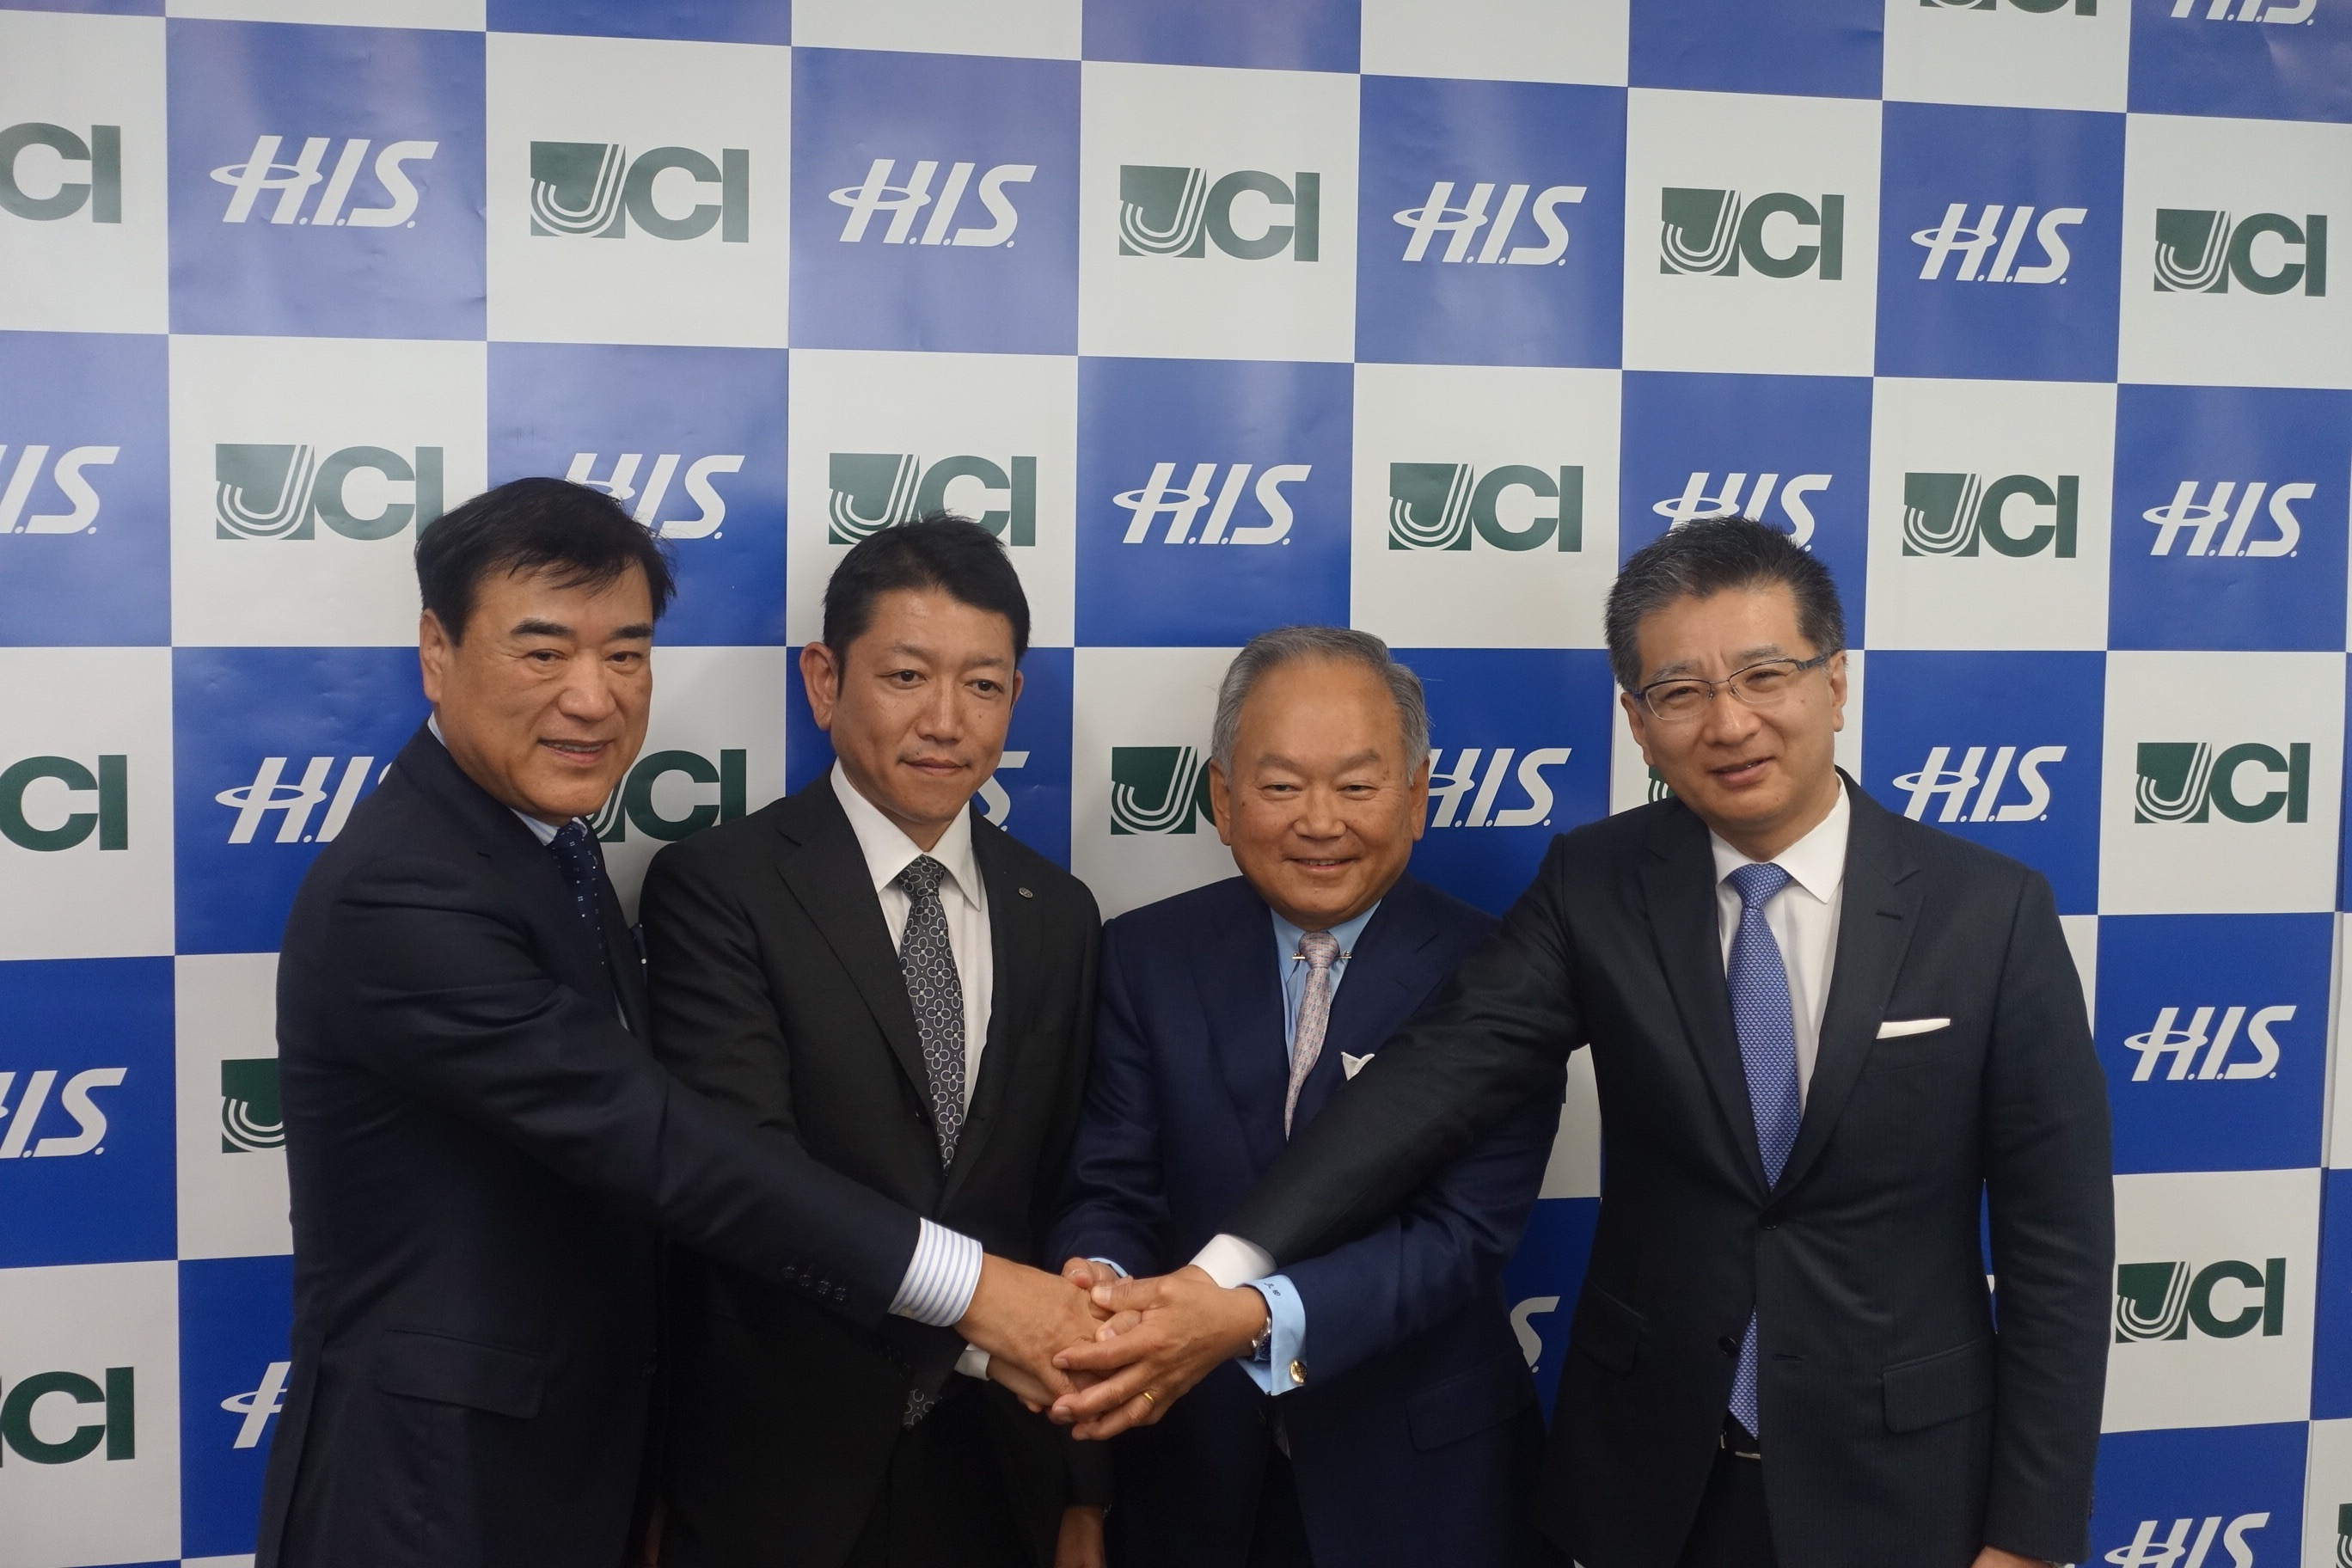 H.I.S. Mobile is launched to provide travelers with MVNO SIM for low-cost smart phone services